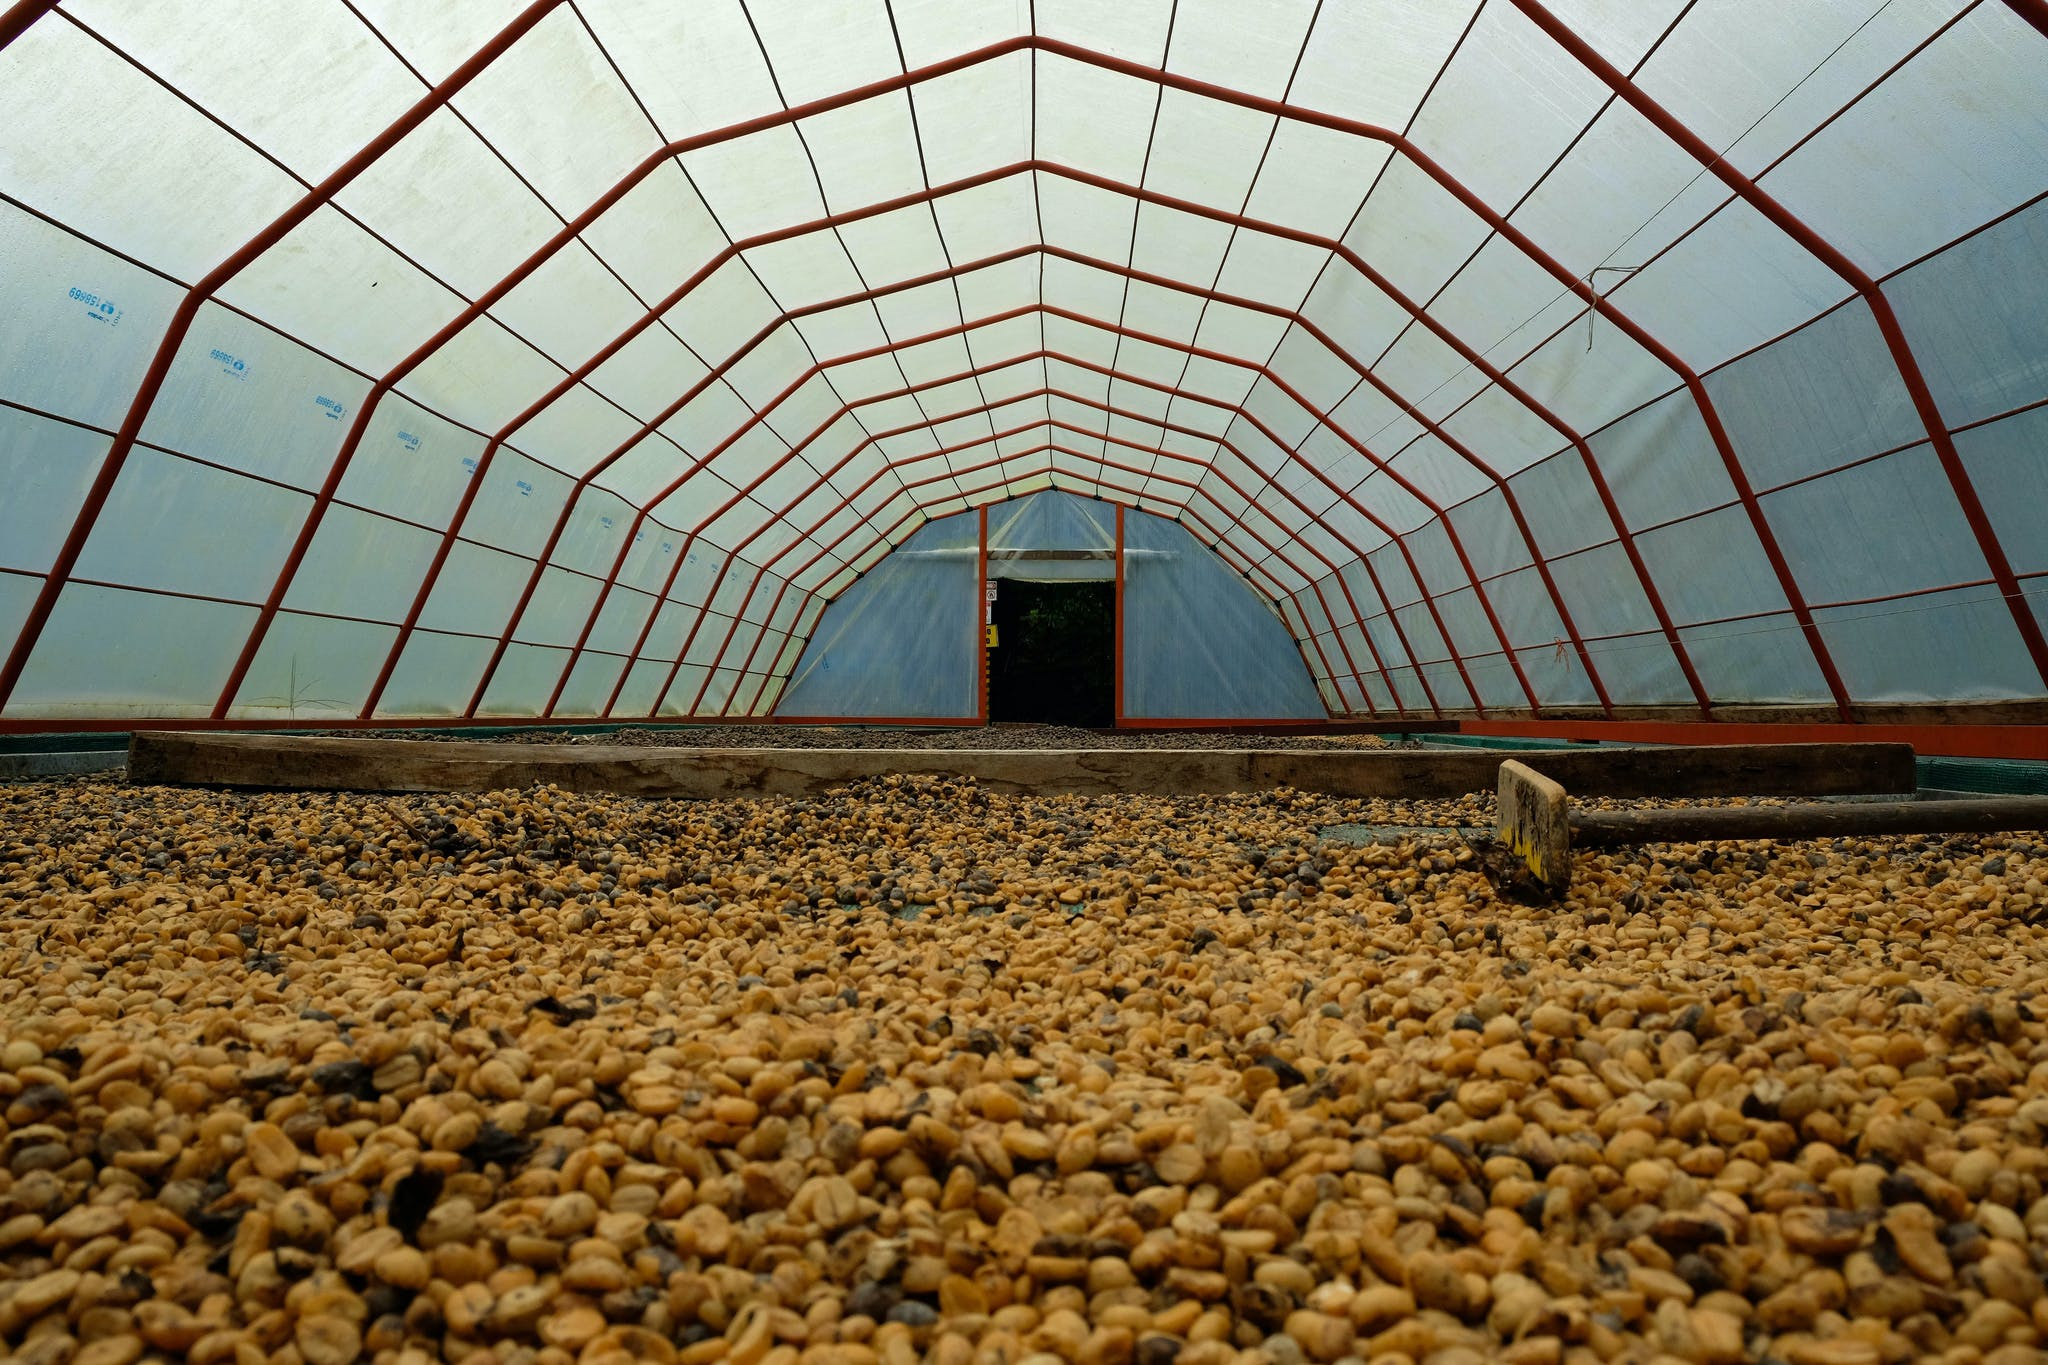 a green house used to harvest coffee beans